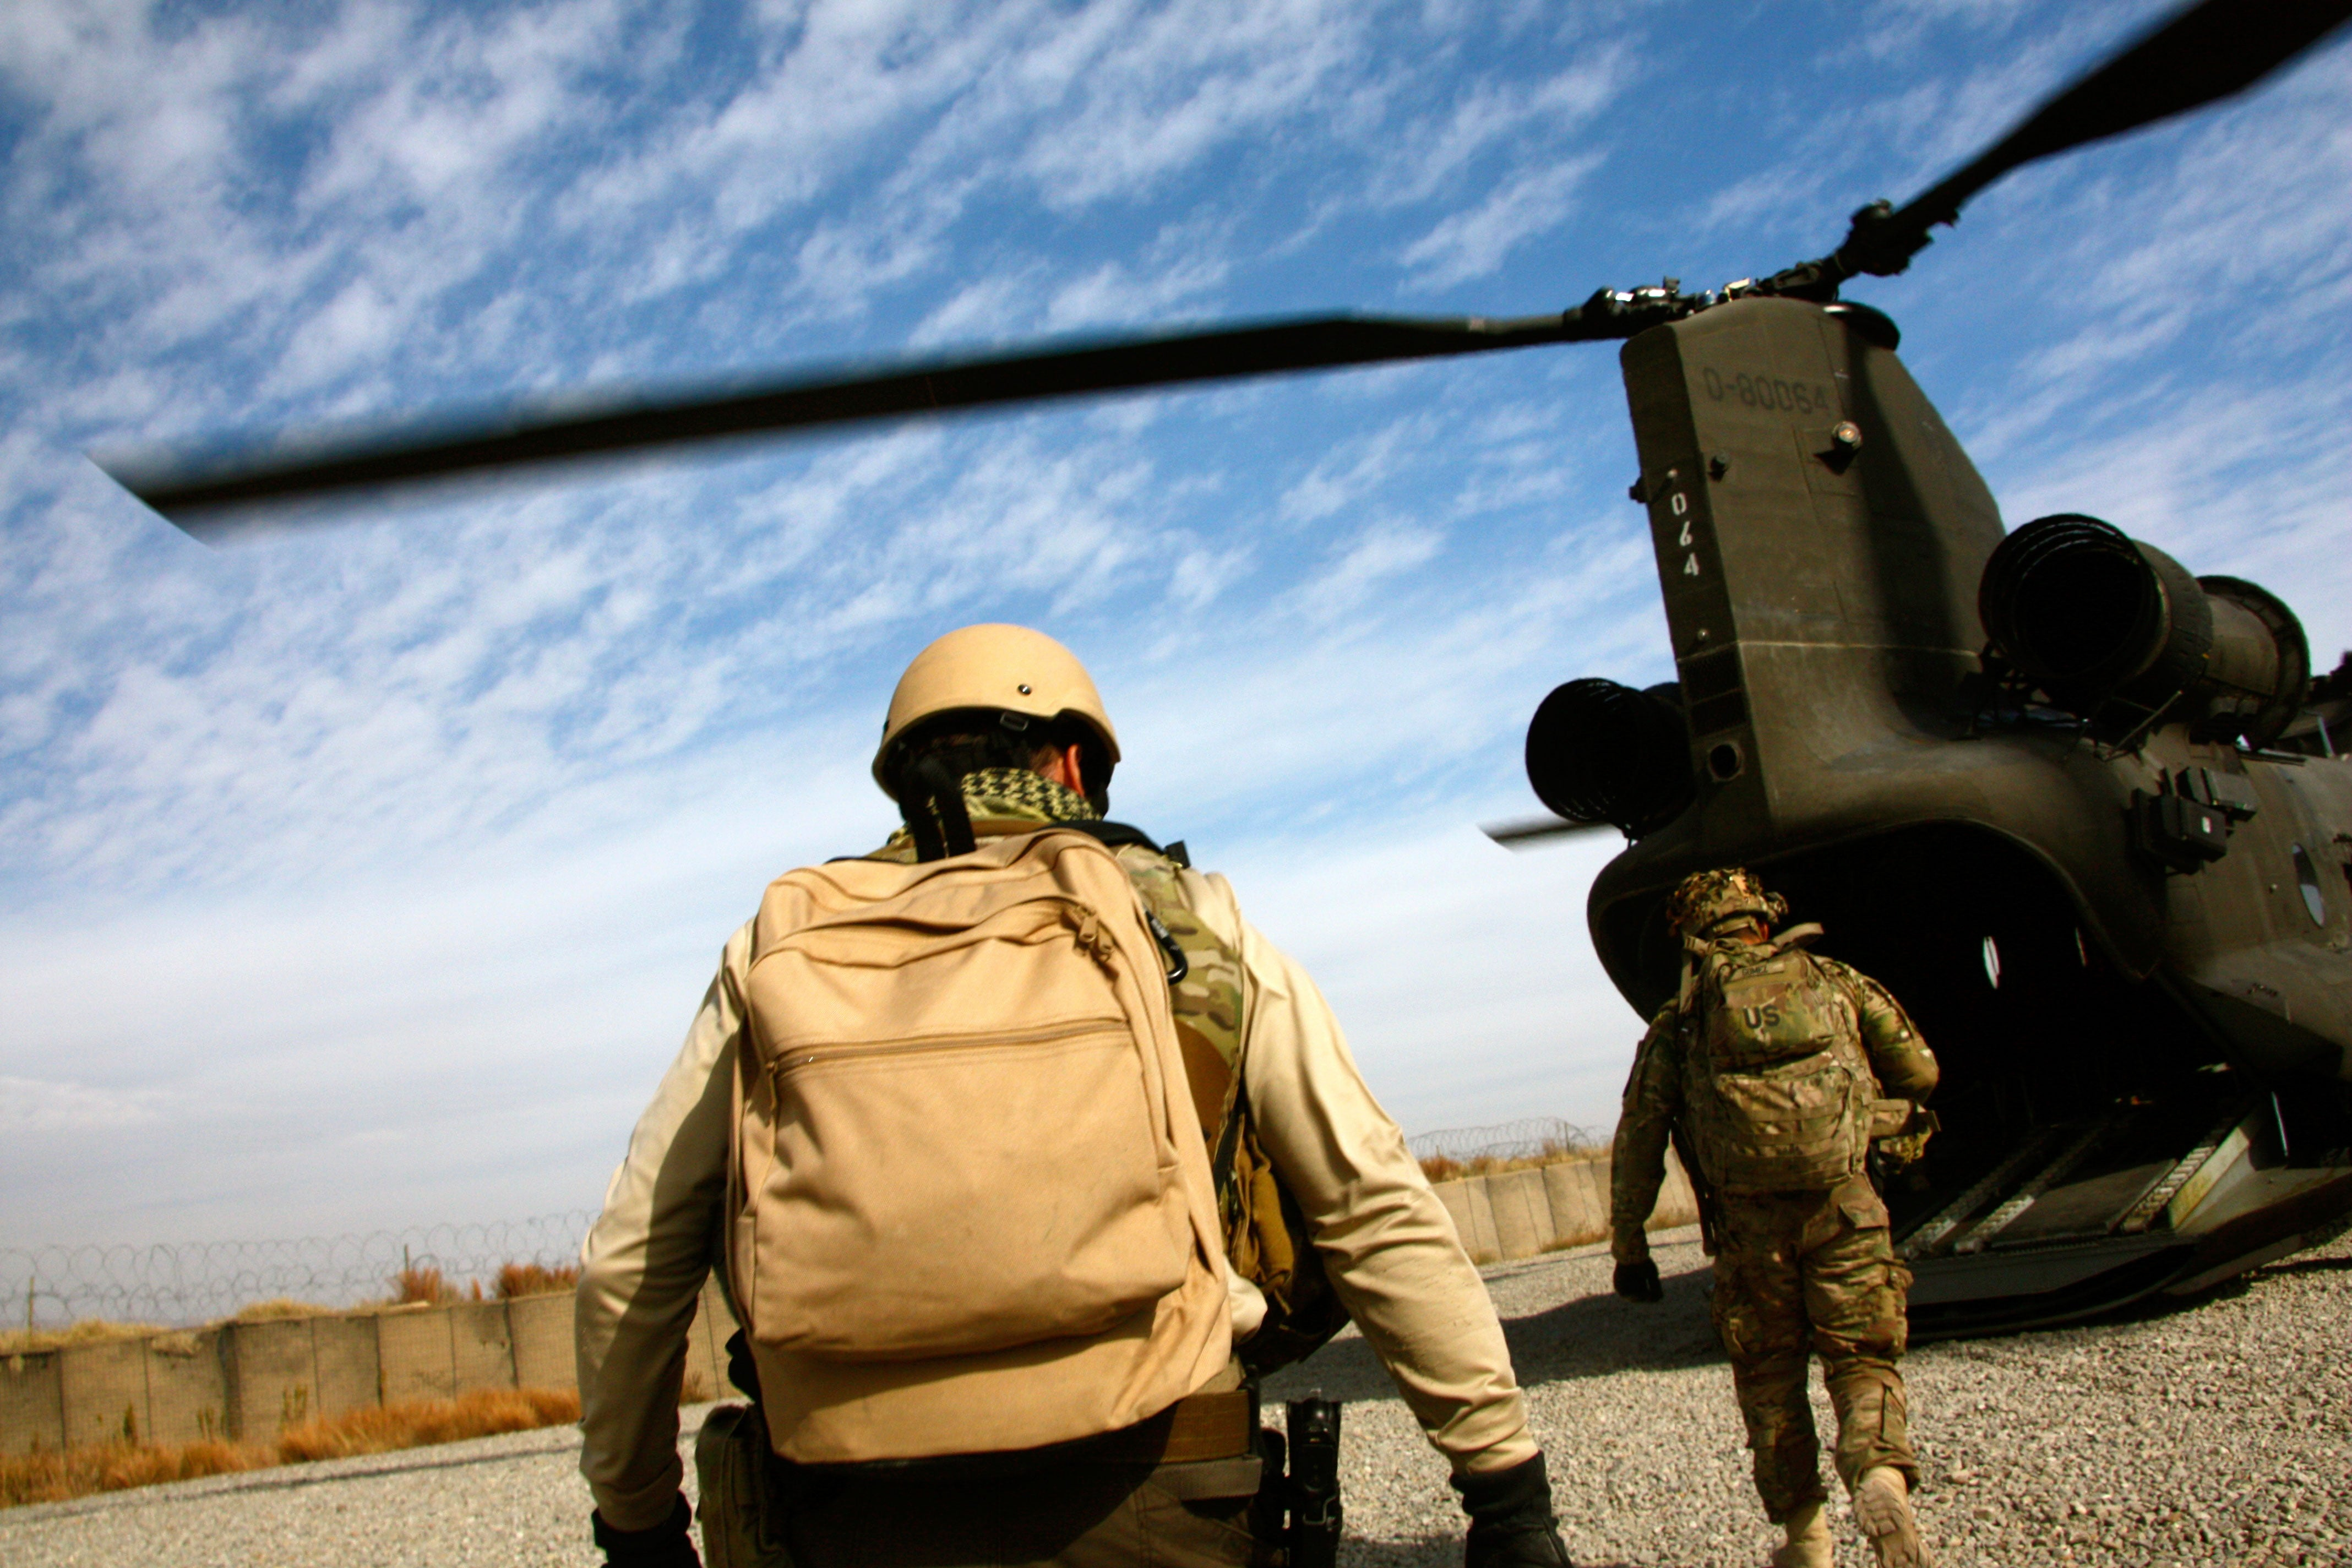 U.S. Army soldiers on a mission in Afghanistan.